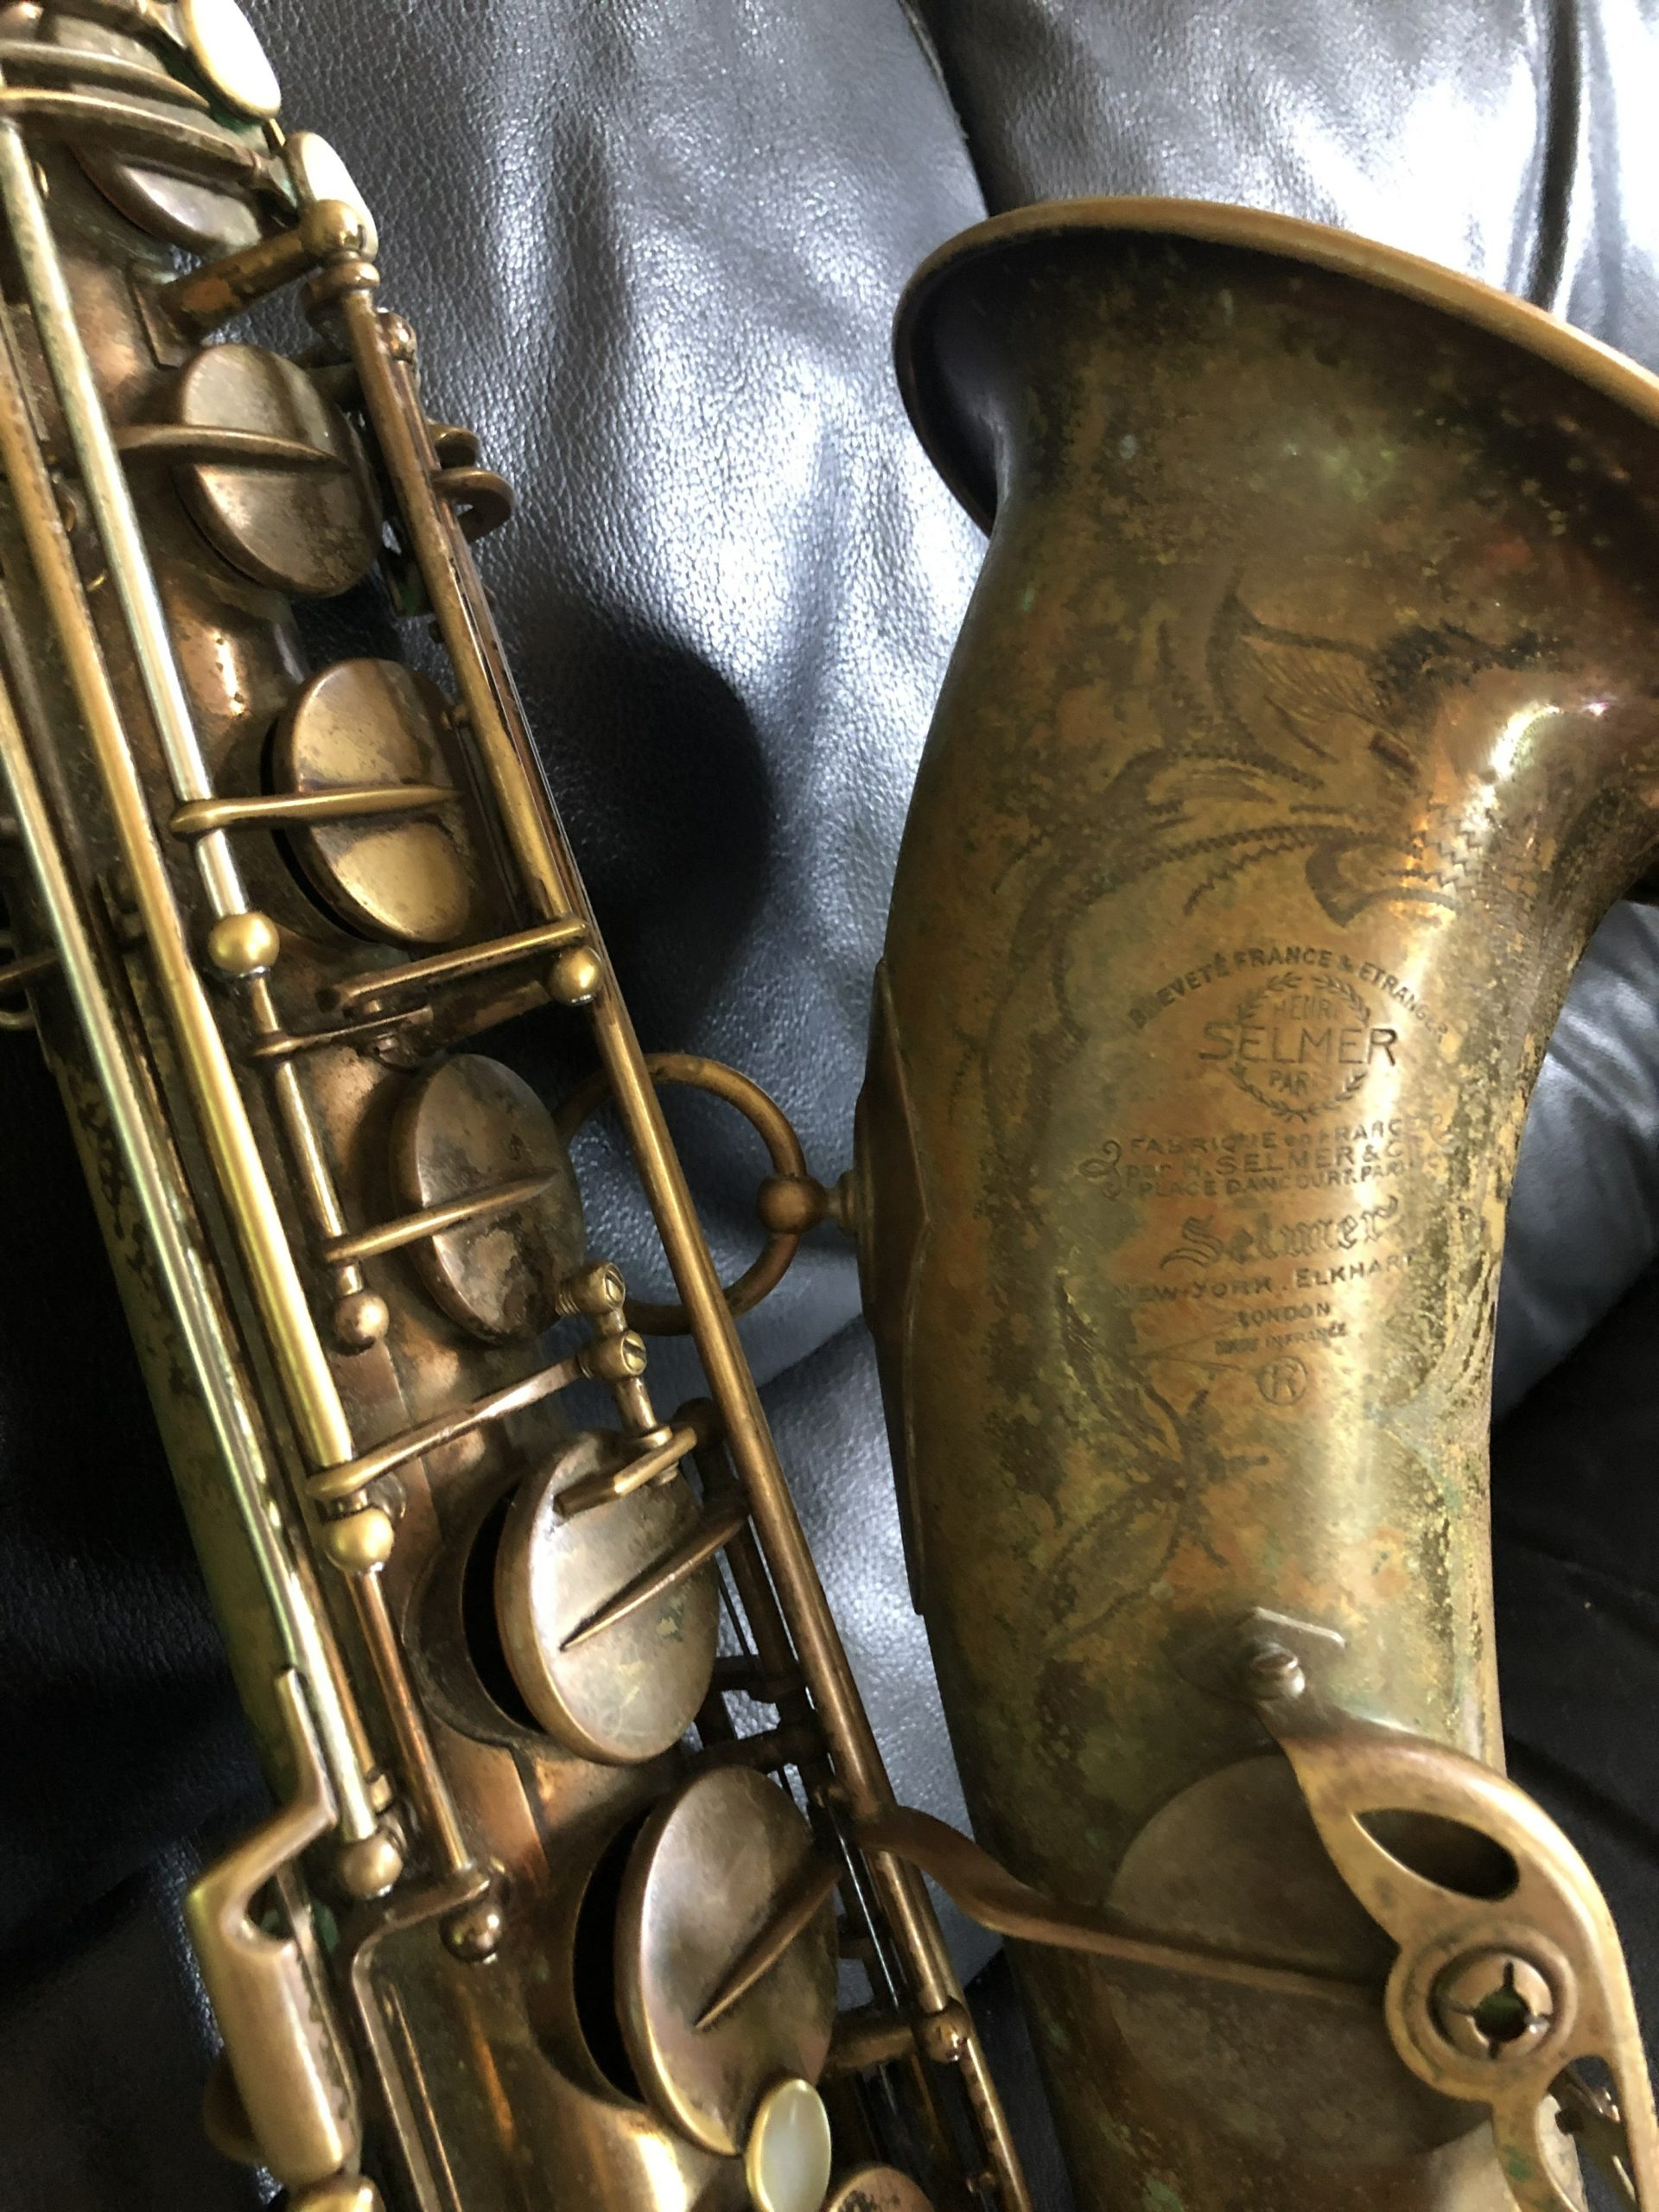 Pat DeRosa still plays the Selmer Mark VI saxophone he purchased in the 1940s. CAILIN RILEY